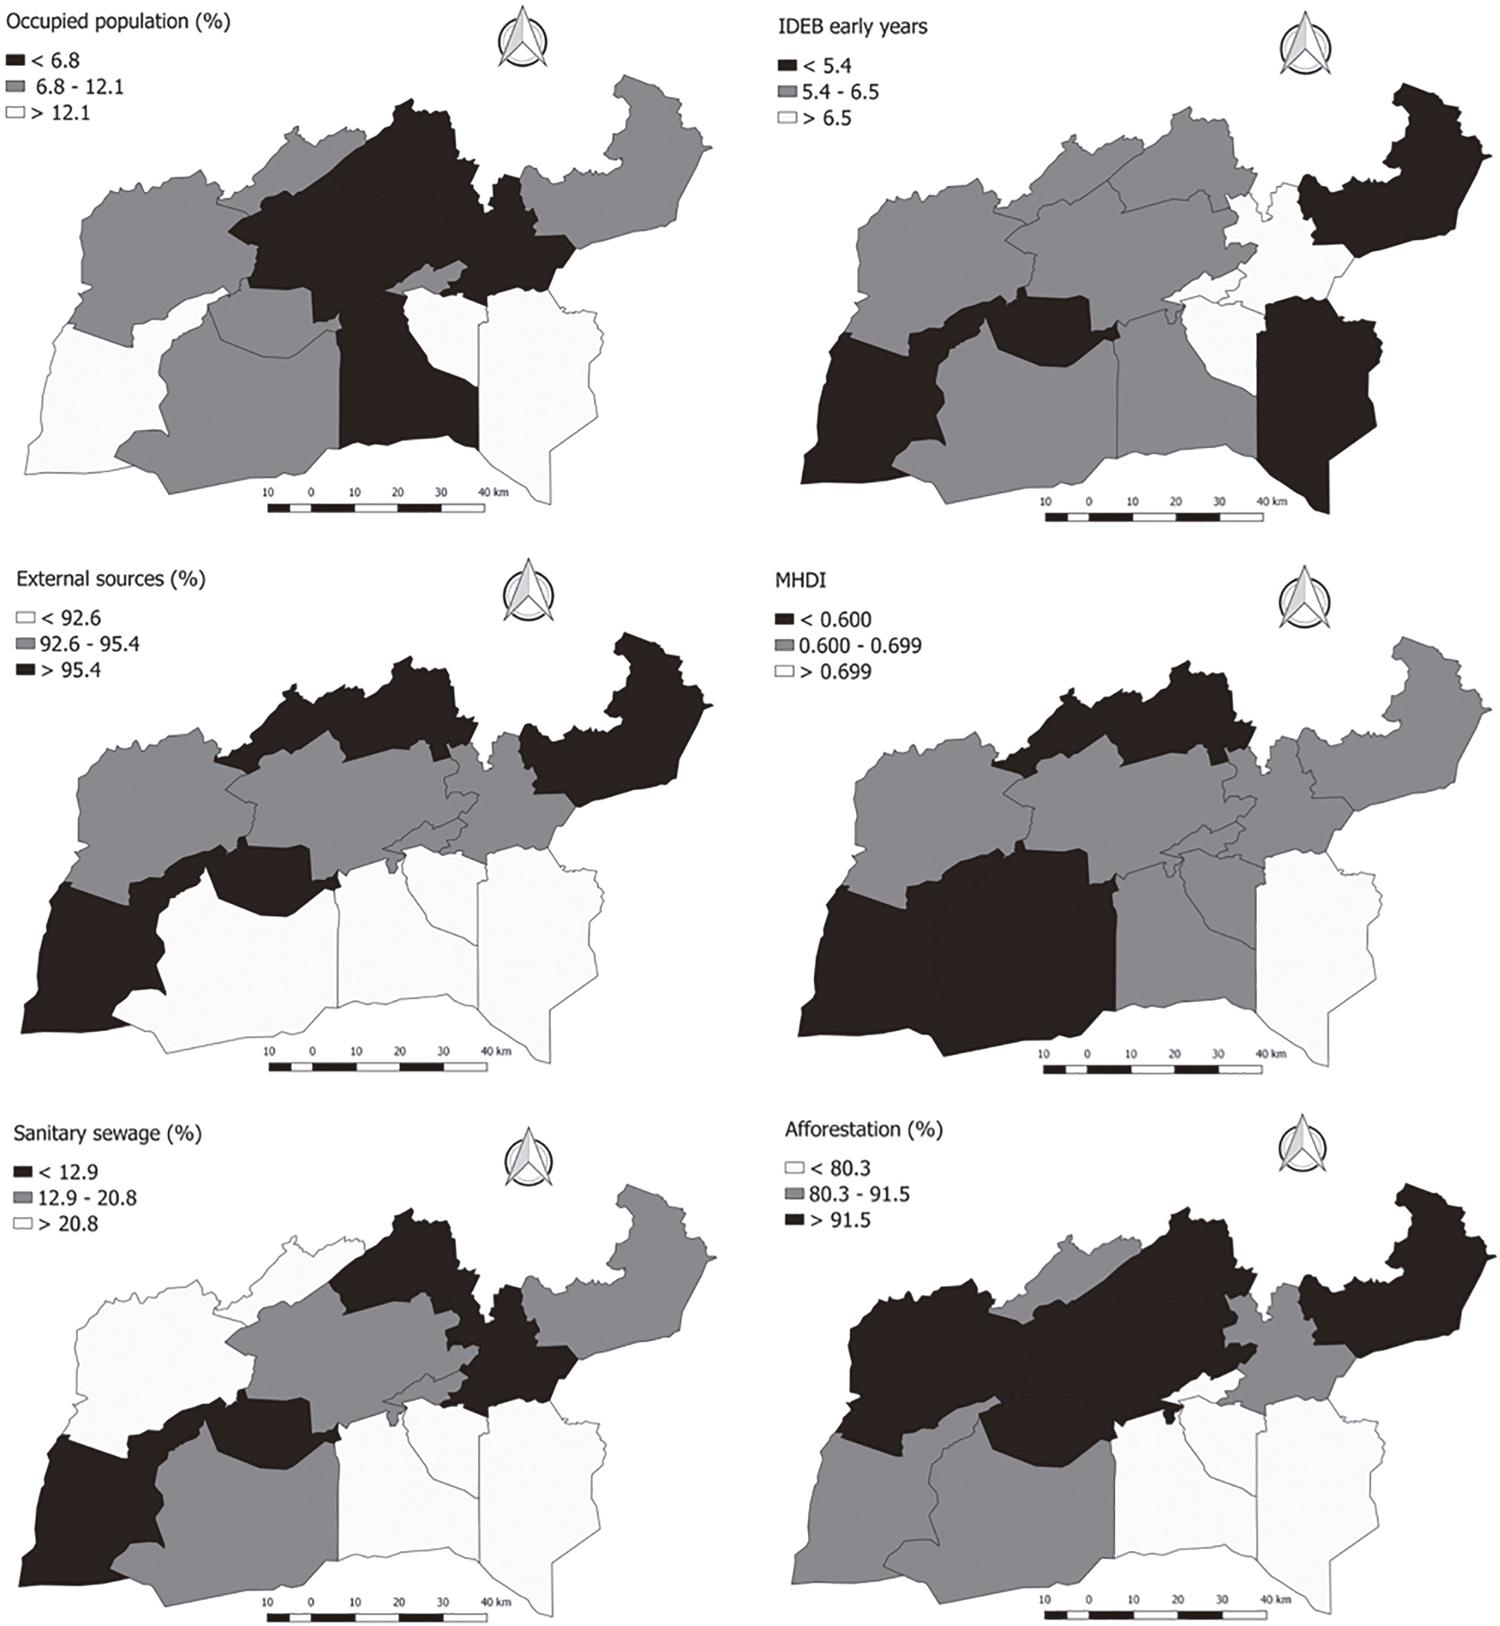 Maps of occupied population; IDEB score in the early years; revenues from external sources; MHDI; sanitary sewage and afforestation, according to IBGE, for the 13 municipalities that form the 20th Regional Health Coordination (CRES) of the Ceara State.